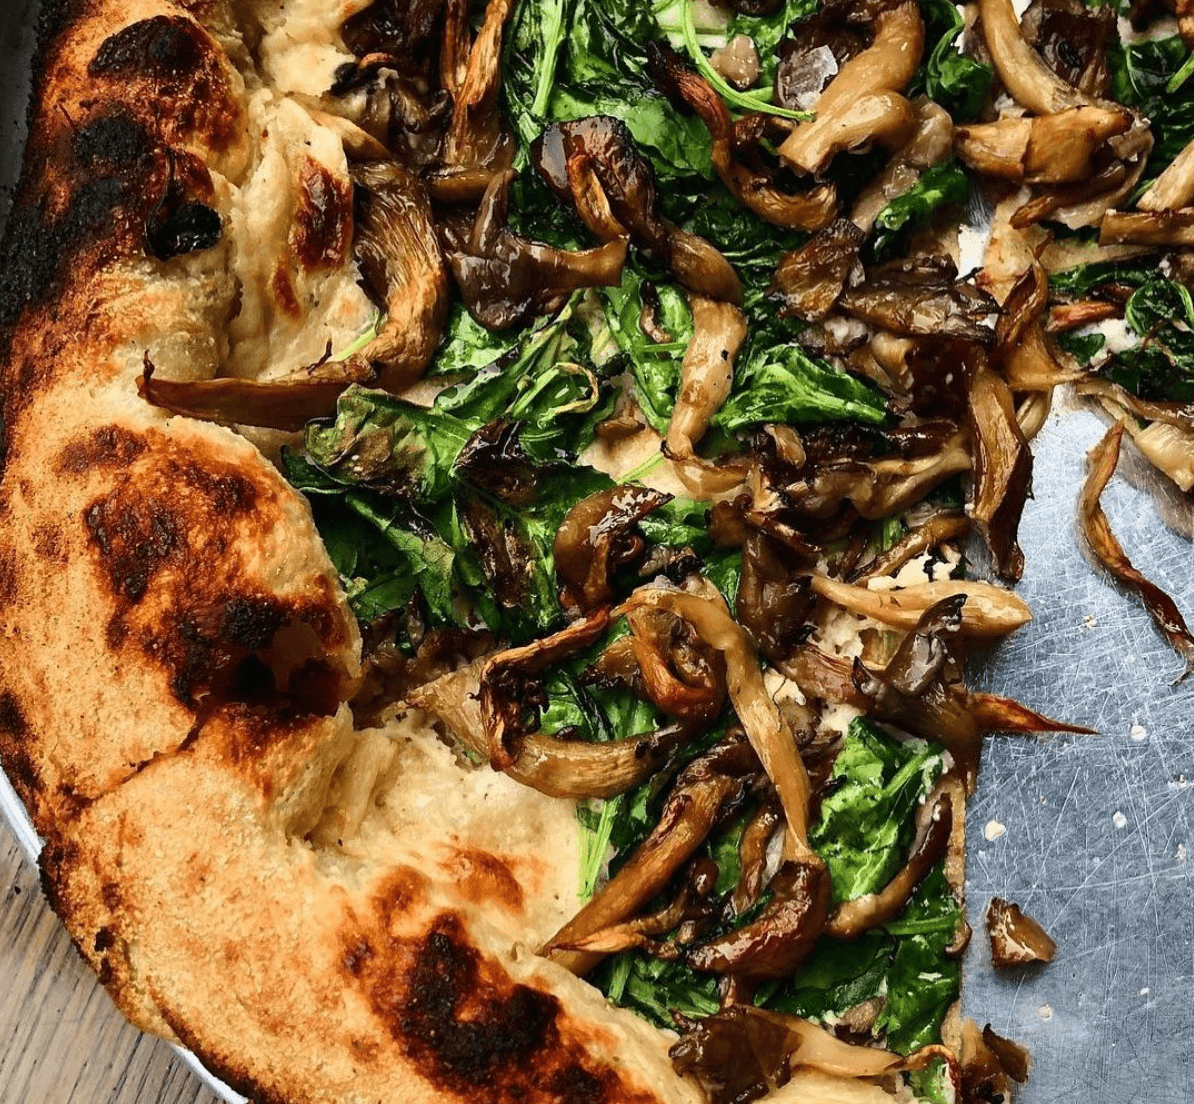 THE BEST 5 PLACES TO EAT PLANT-BASED IN NEW YORK by Sanza's Kitchen